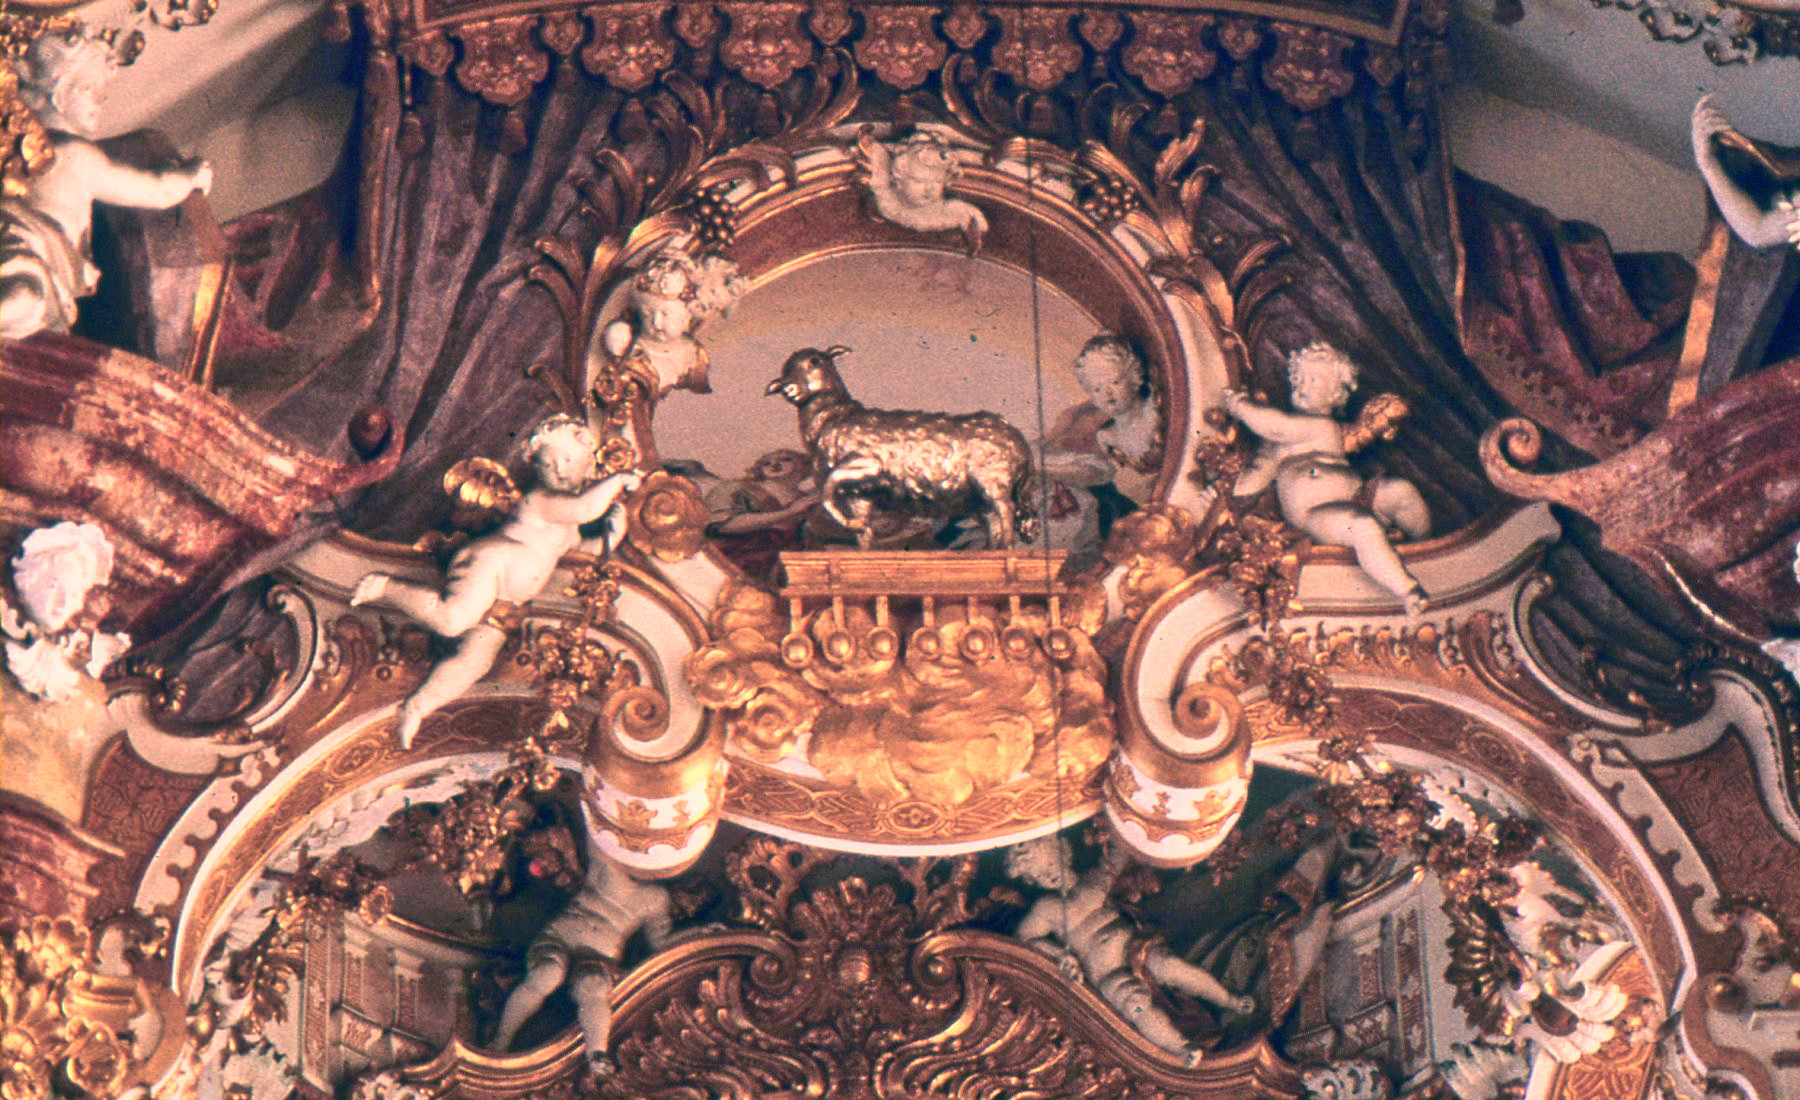 The lamb of God stands over all (above the altar).